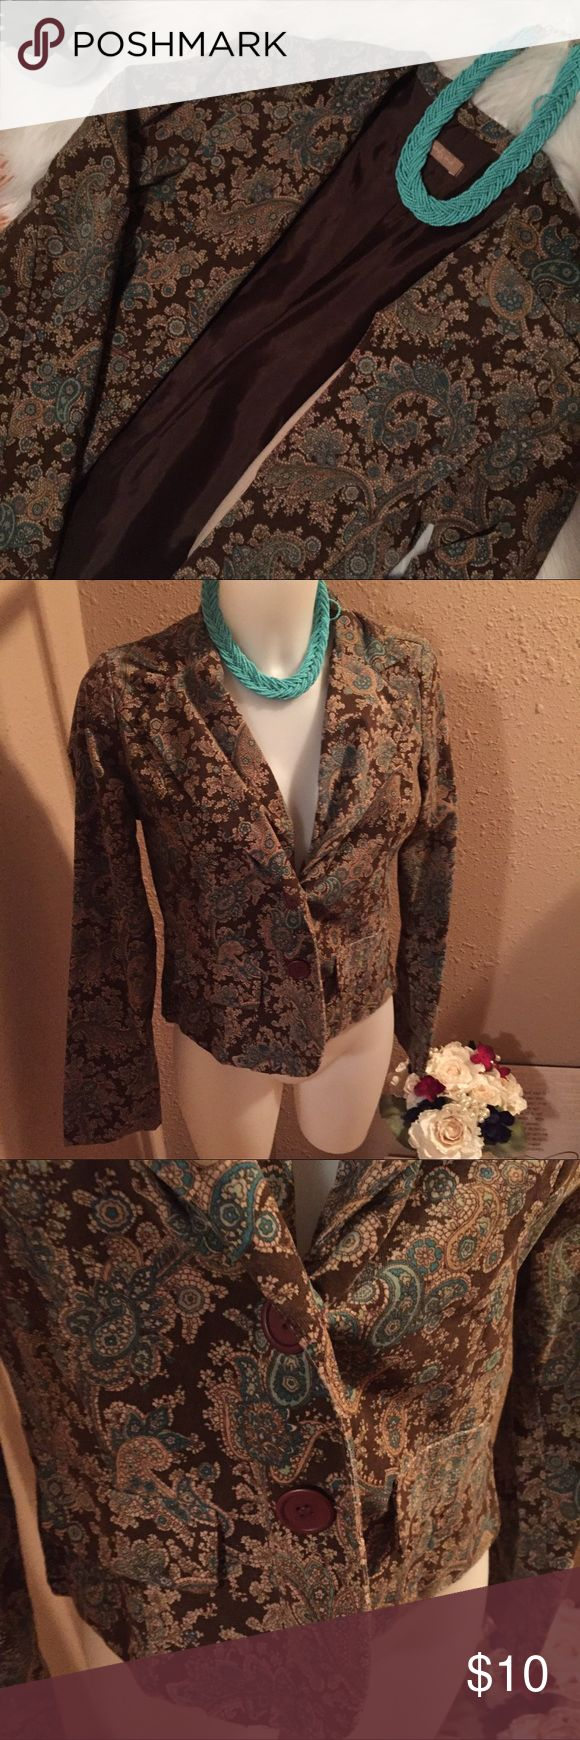 Twenty One Paisley Blazer. Brown and Teal Size M/L Swede paisley blazer. Super adorable. Perfect to dress up for work. Add a pair of brown slacks and a teal necklace. Does not have a size tag but it fits like a M/L on myself. I wear a small. Twenty One Jackets & Coats Blazers